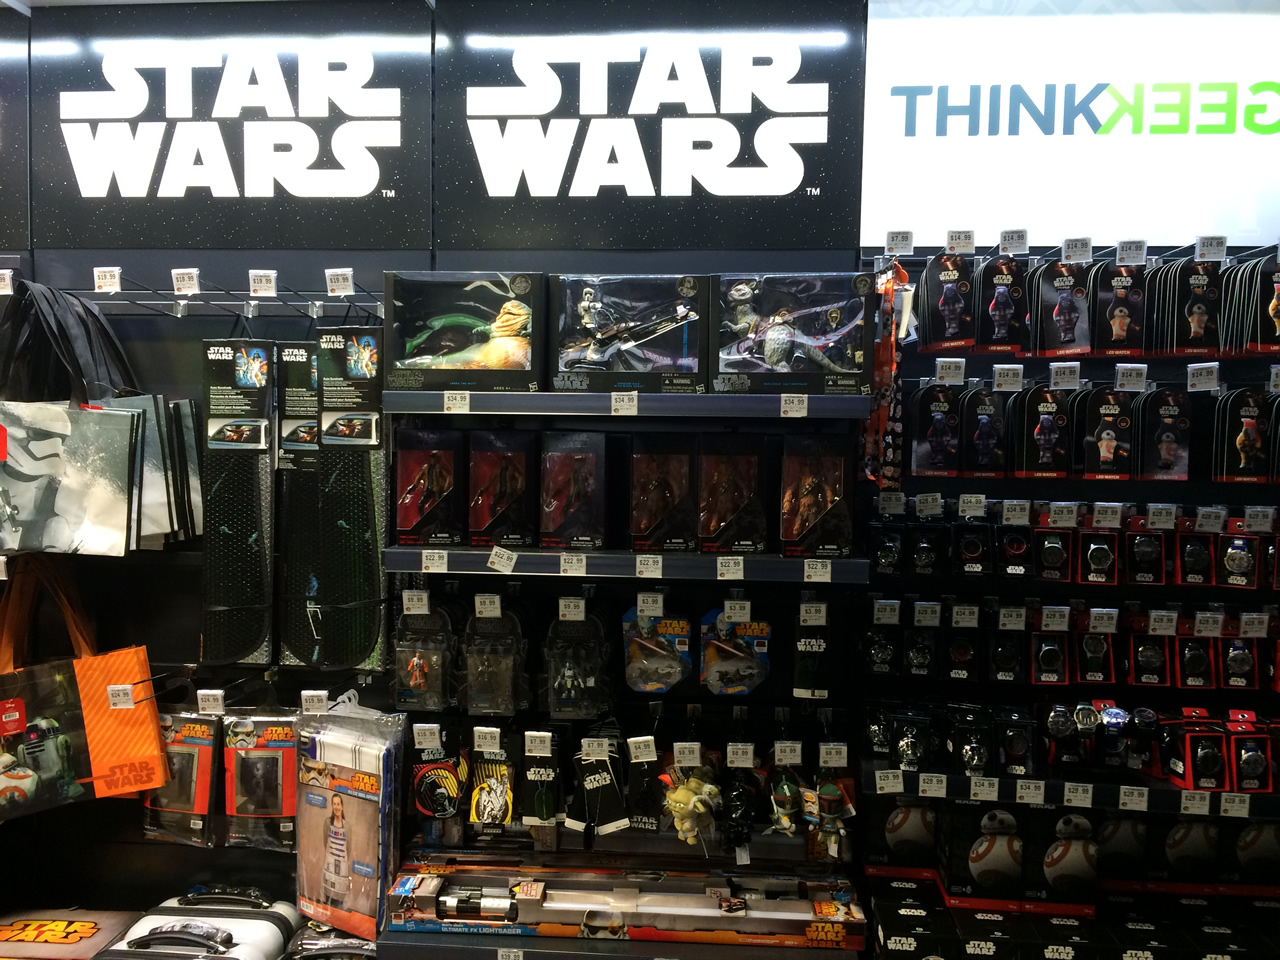 15 thinkgeek store - star wars wall